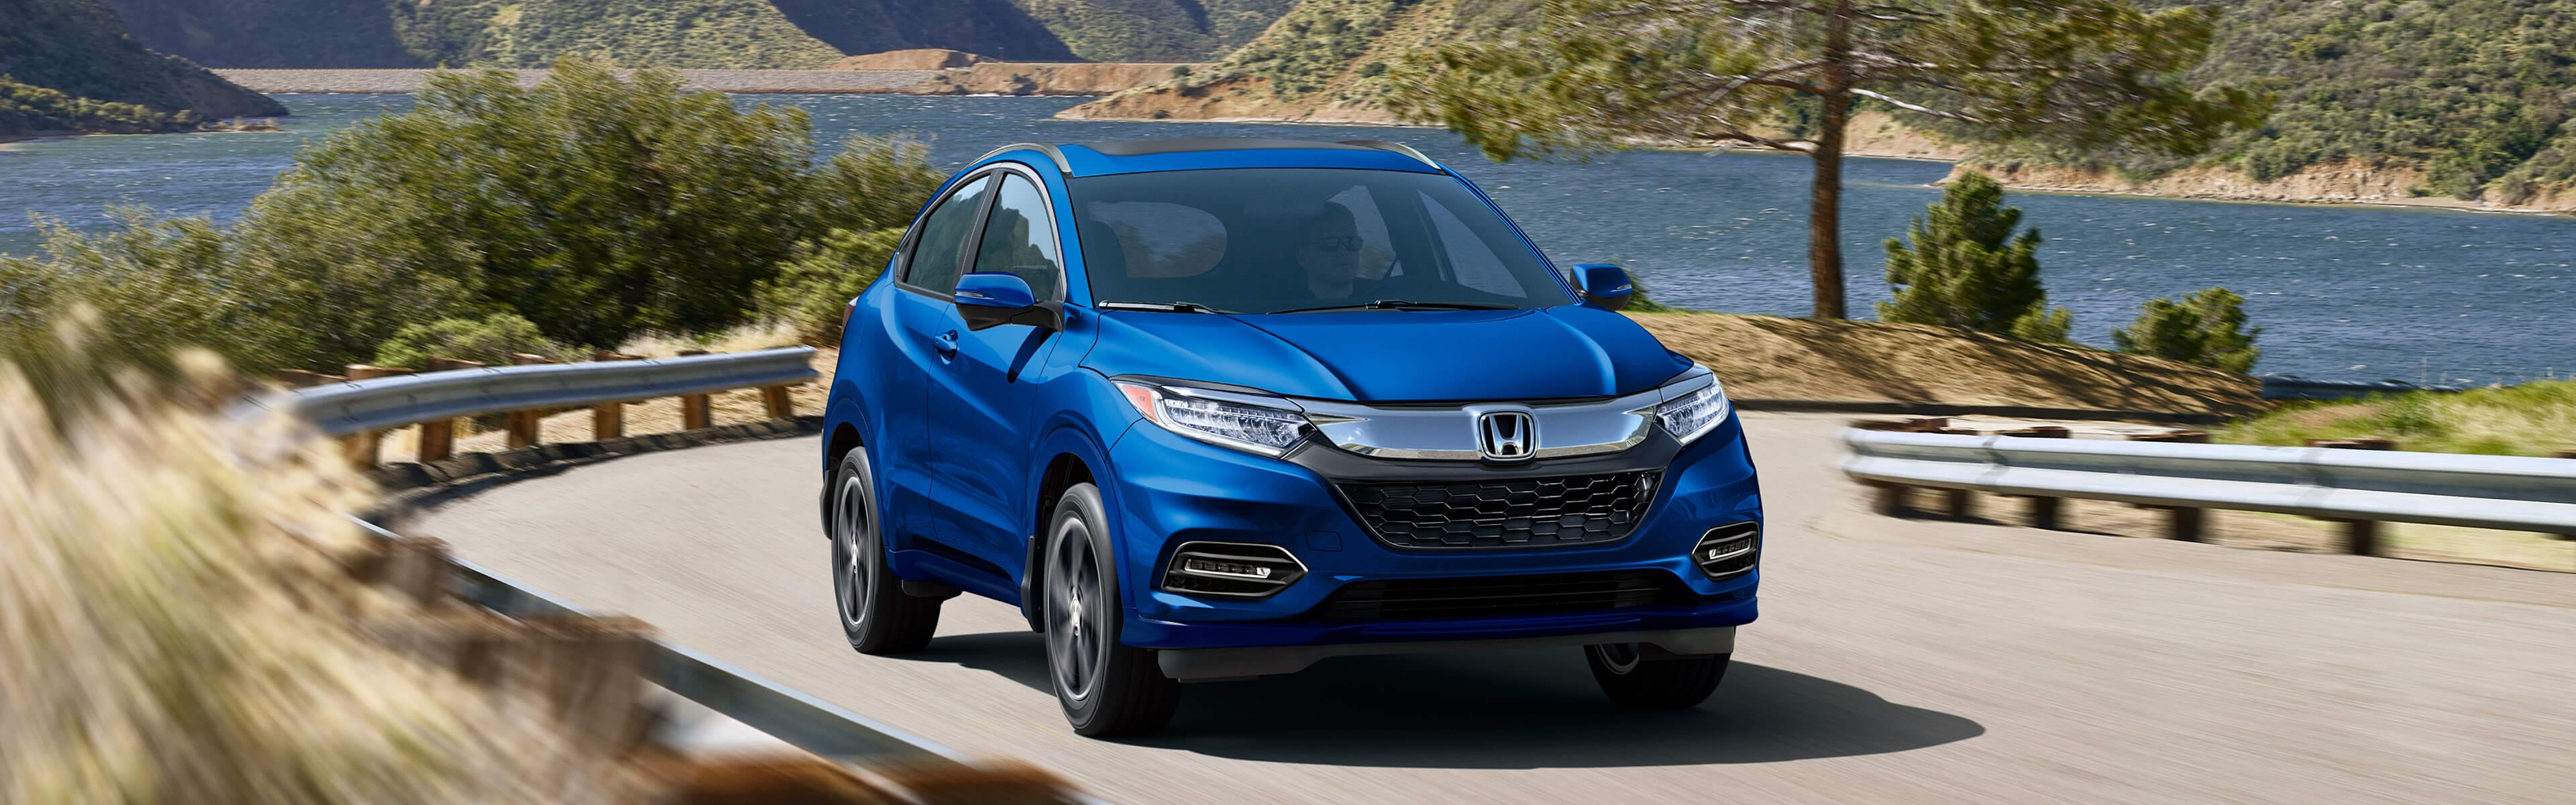 2020 Honda HR-V at Richmond Hill Honda in Toronto and the GTA